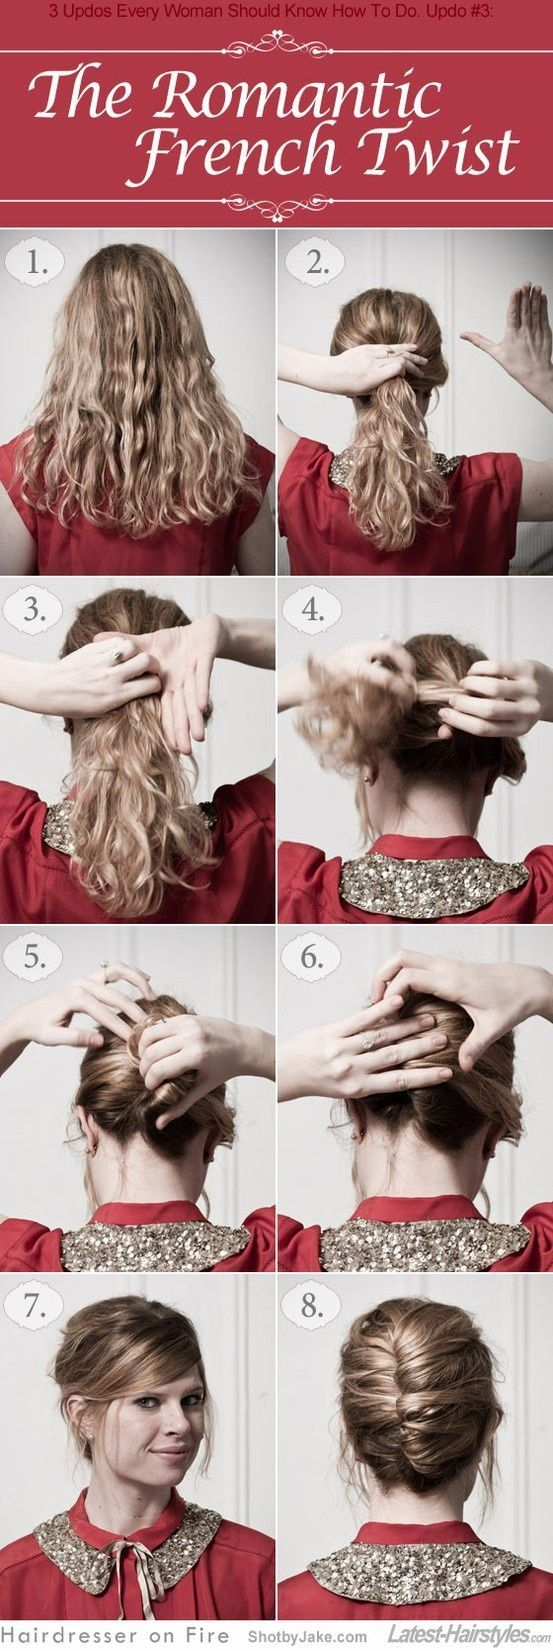 The 25 best french twist tutorial ideas on pinterest twist hair looking for an updo idea without the hassle try this simple hair tutorial for the always romantic french twist updo solutioingenieria Image collections